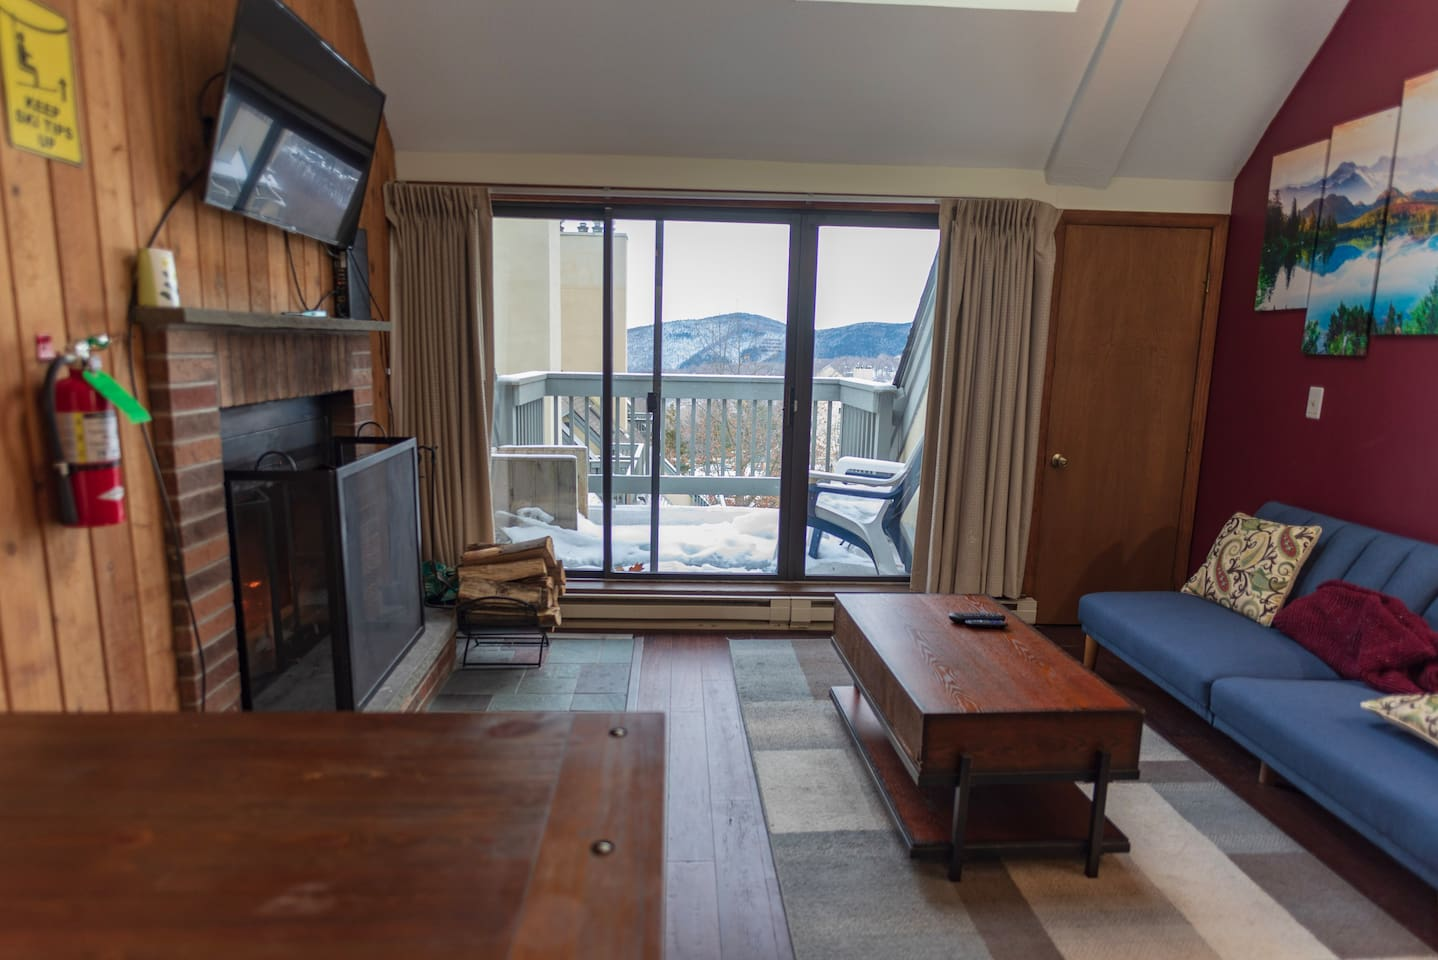 Welcome to your updated condo, flatscreen tv, private balcony on the top floor overlooking the green mountains. Vaulted ceilings with lots of natural light